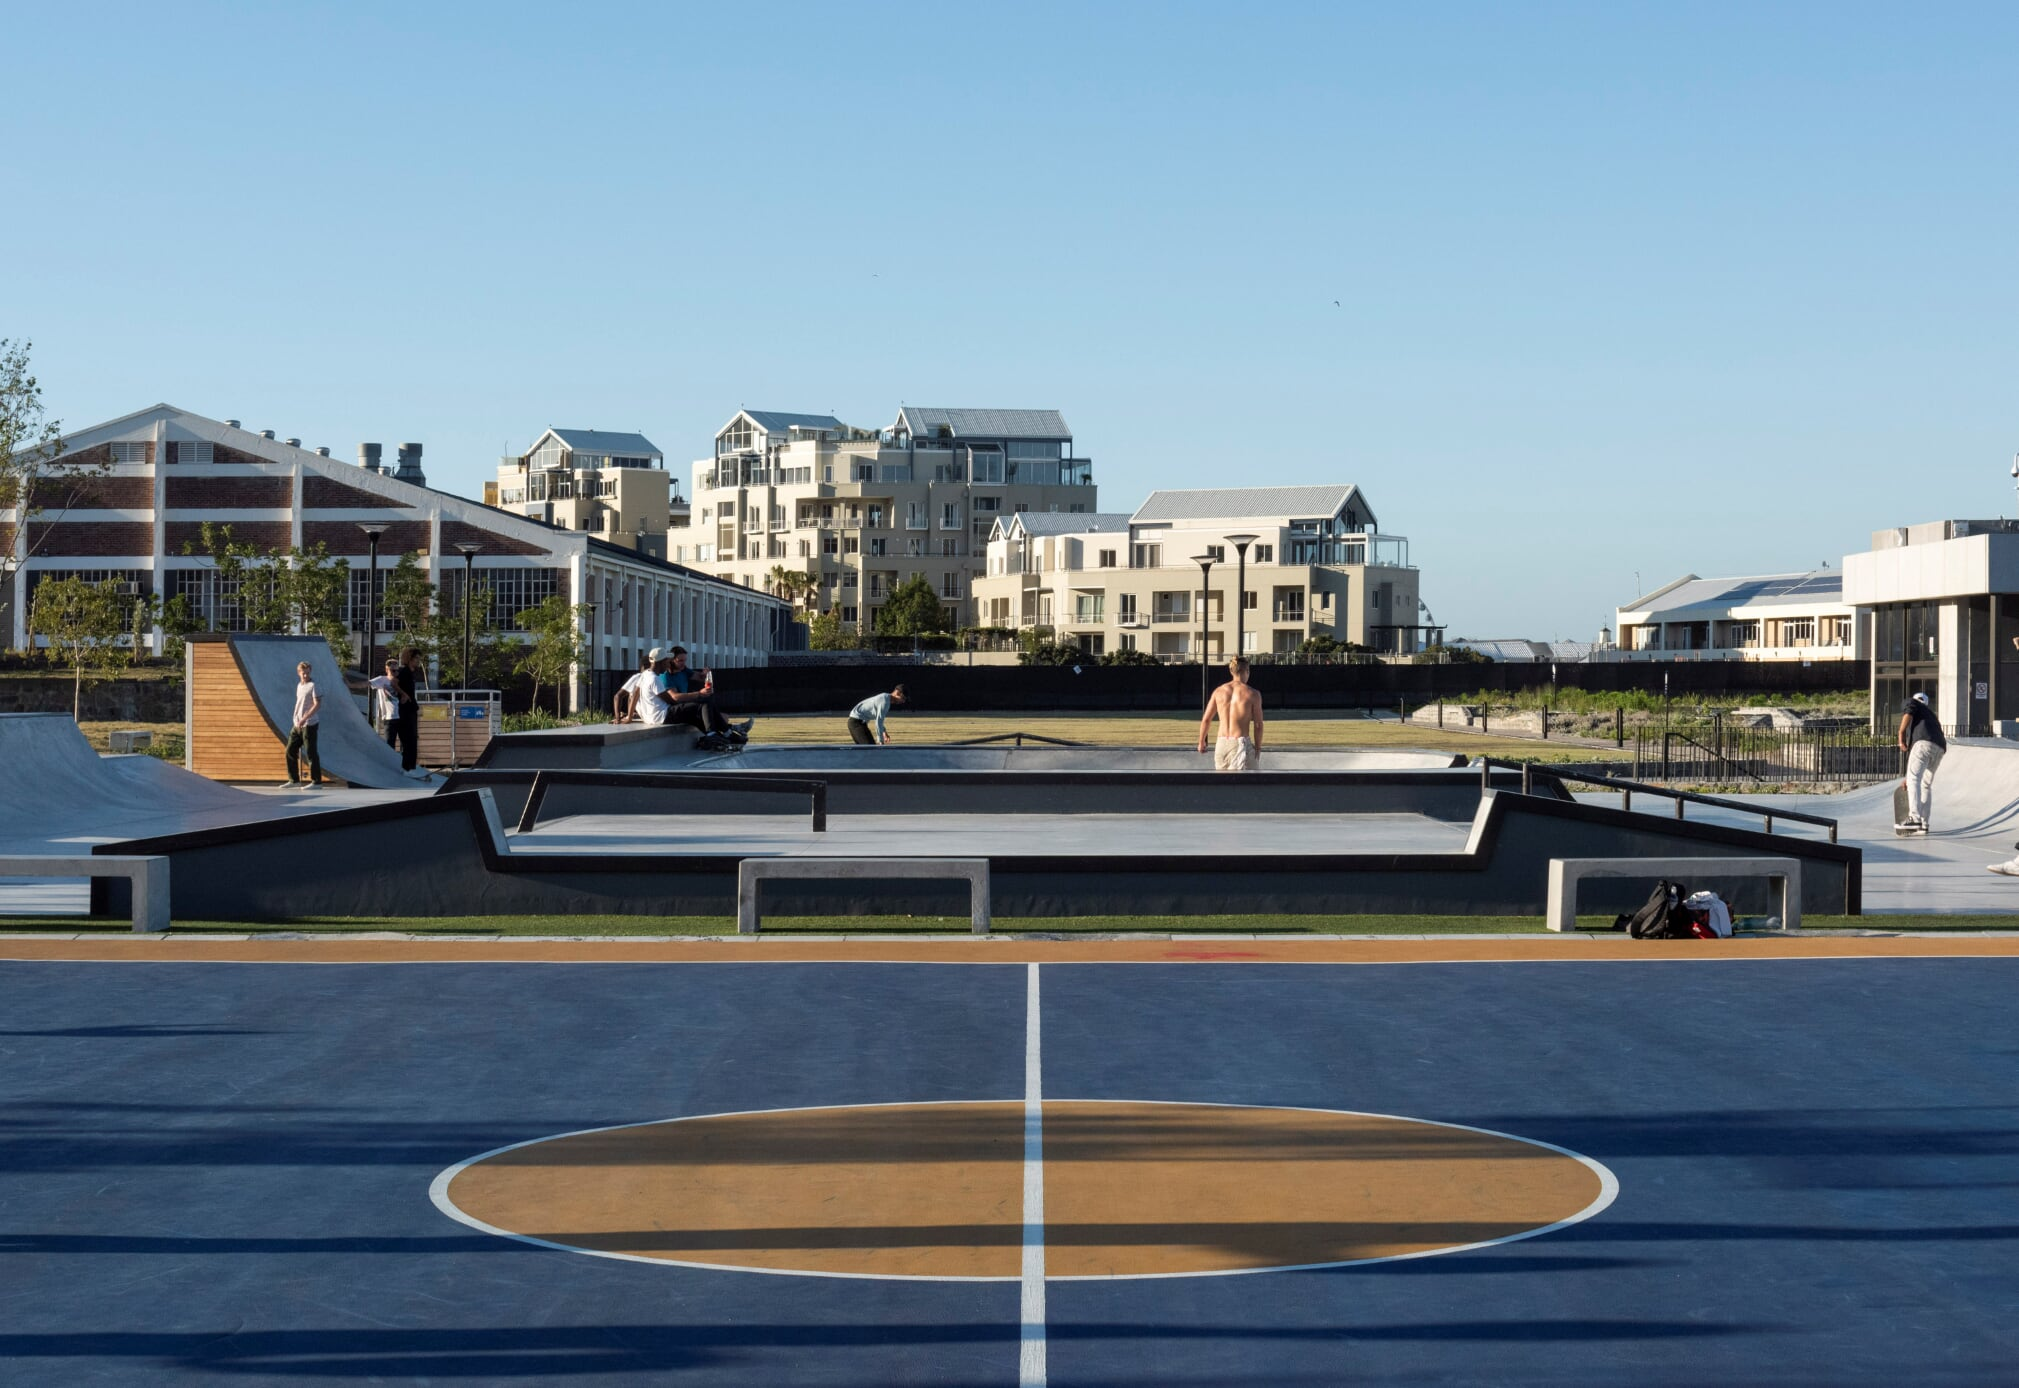 Battery Park is now a space designed to engage the community. Image credit - Dave Southwood.